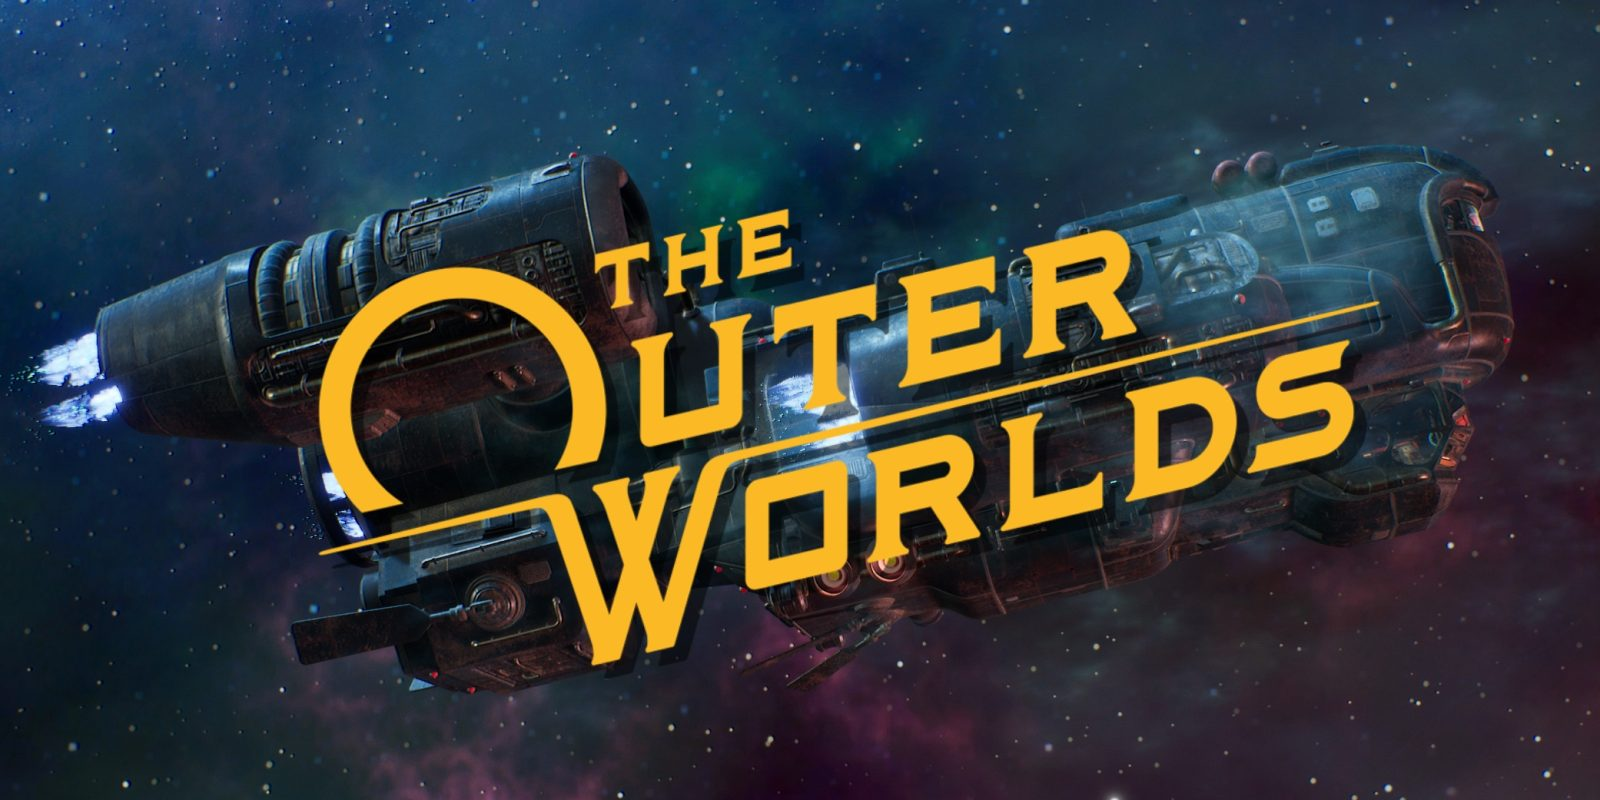 Buy 2 games at Amazon and get 1 FREE: Outer Worlds, COD, Mario Maker 2, more